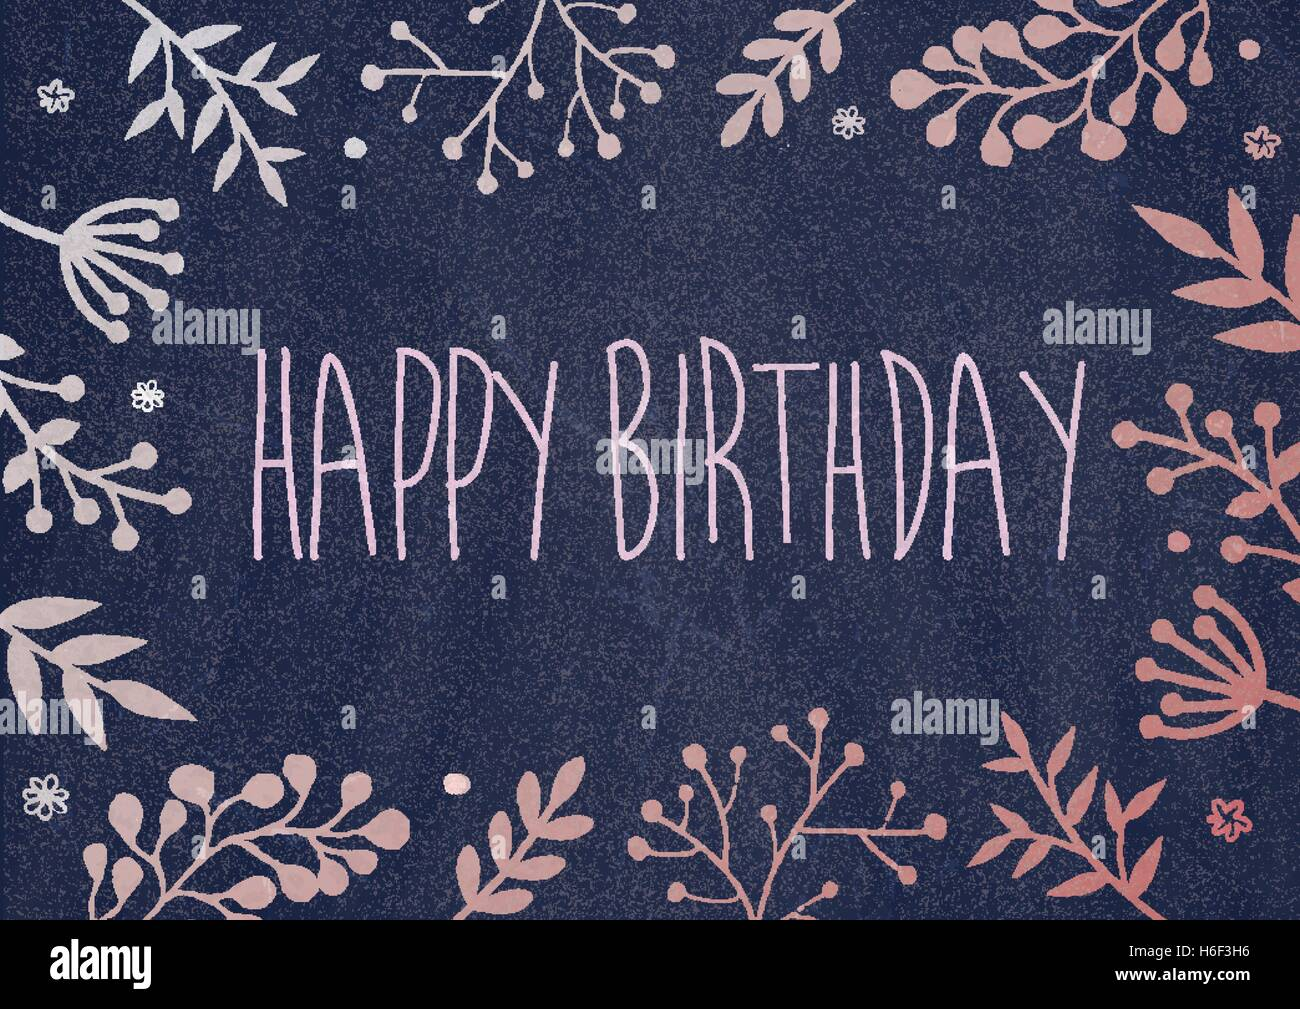 A4 Document Size Dark Blue Board Background With Drawing Flora Border Birthday Greeting Card